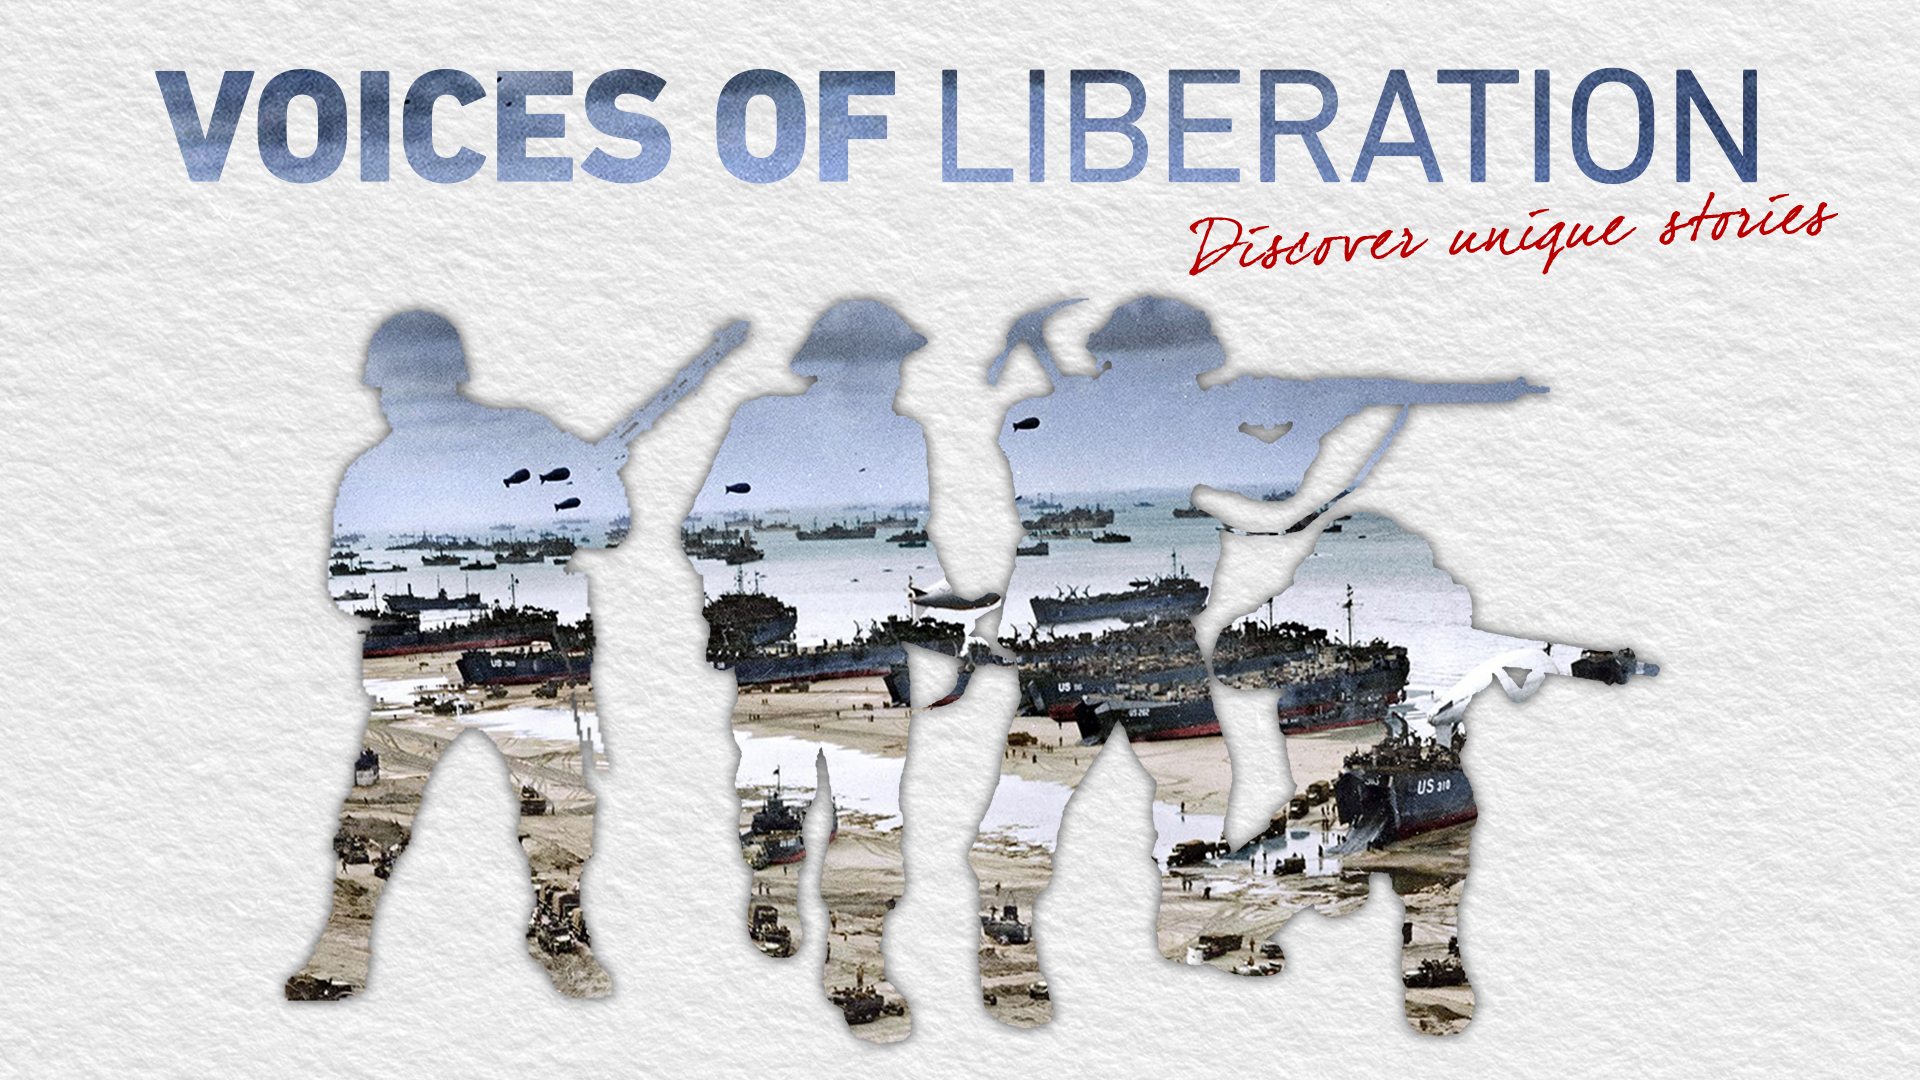 Voices of Liberation_1920x1080_v2